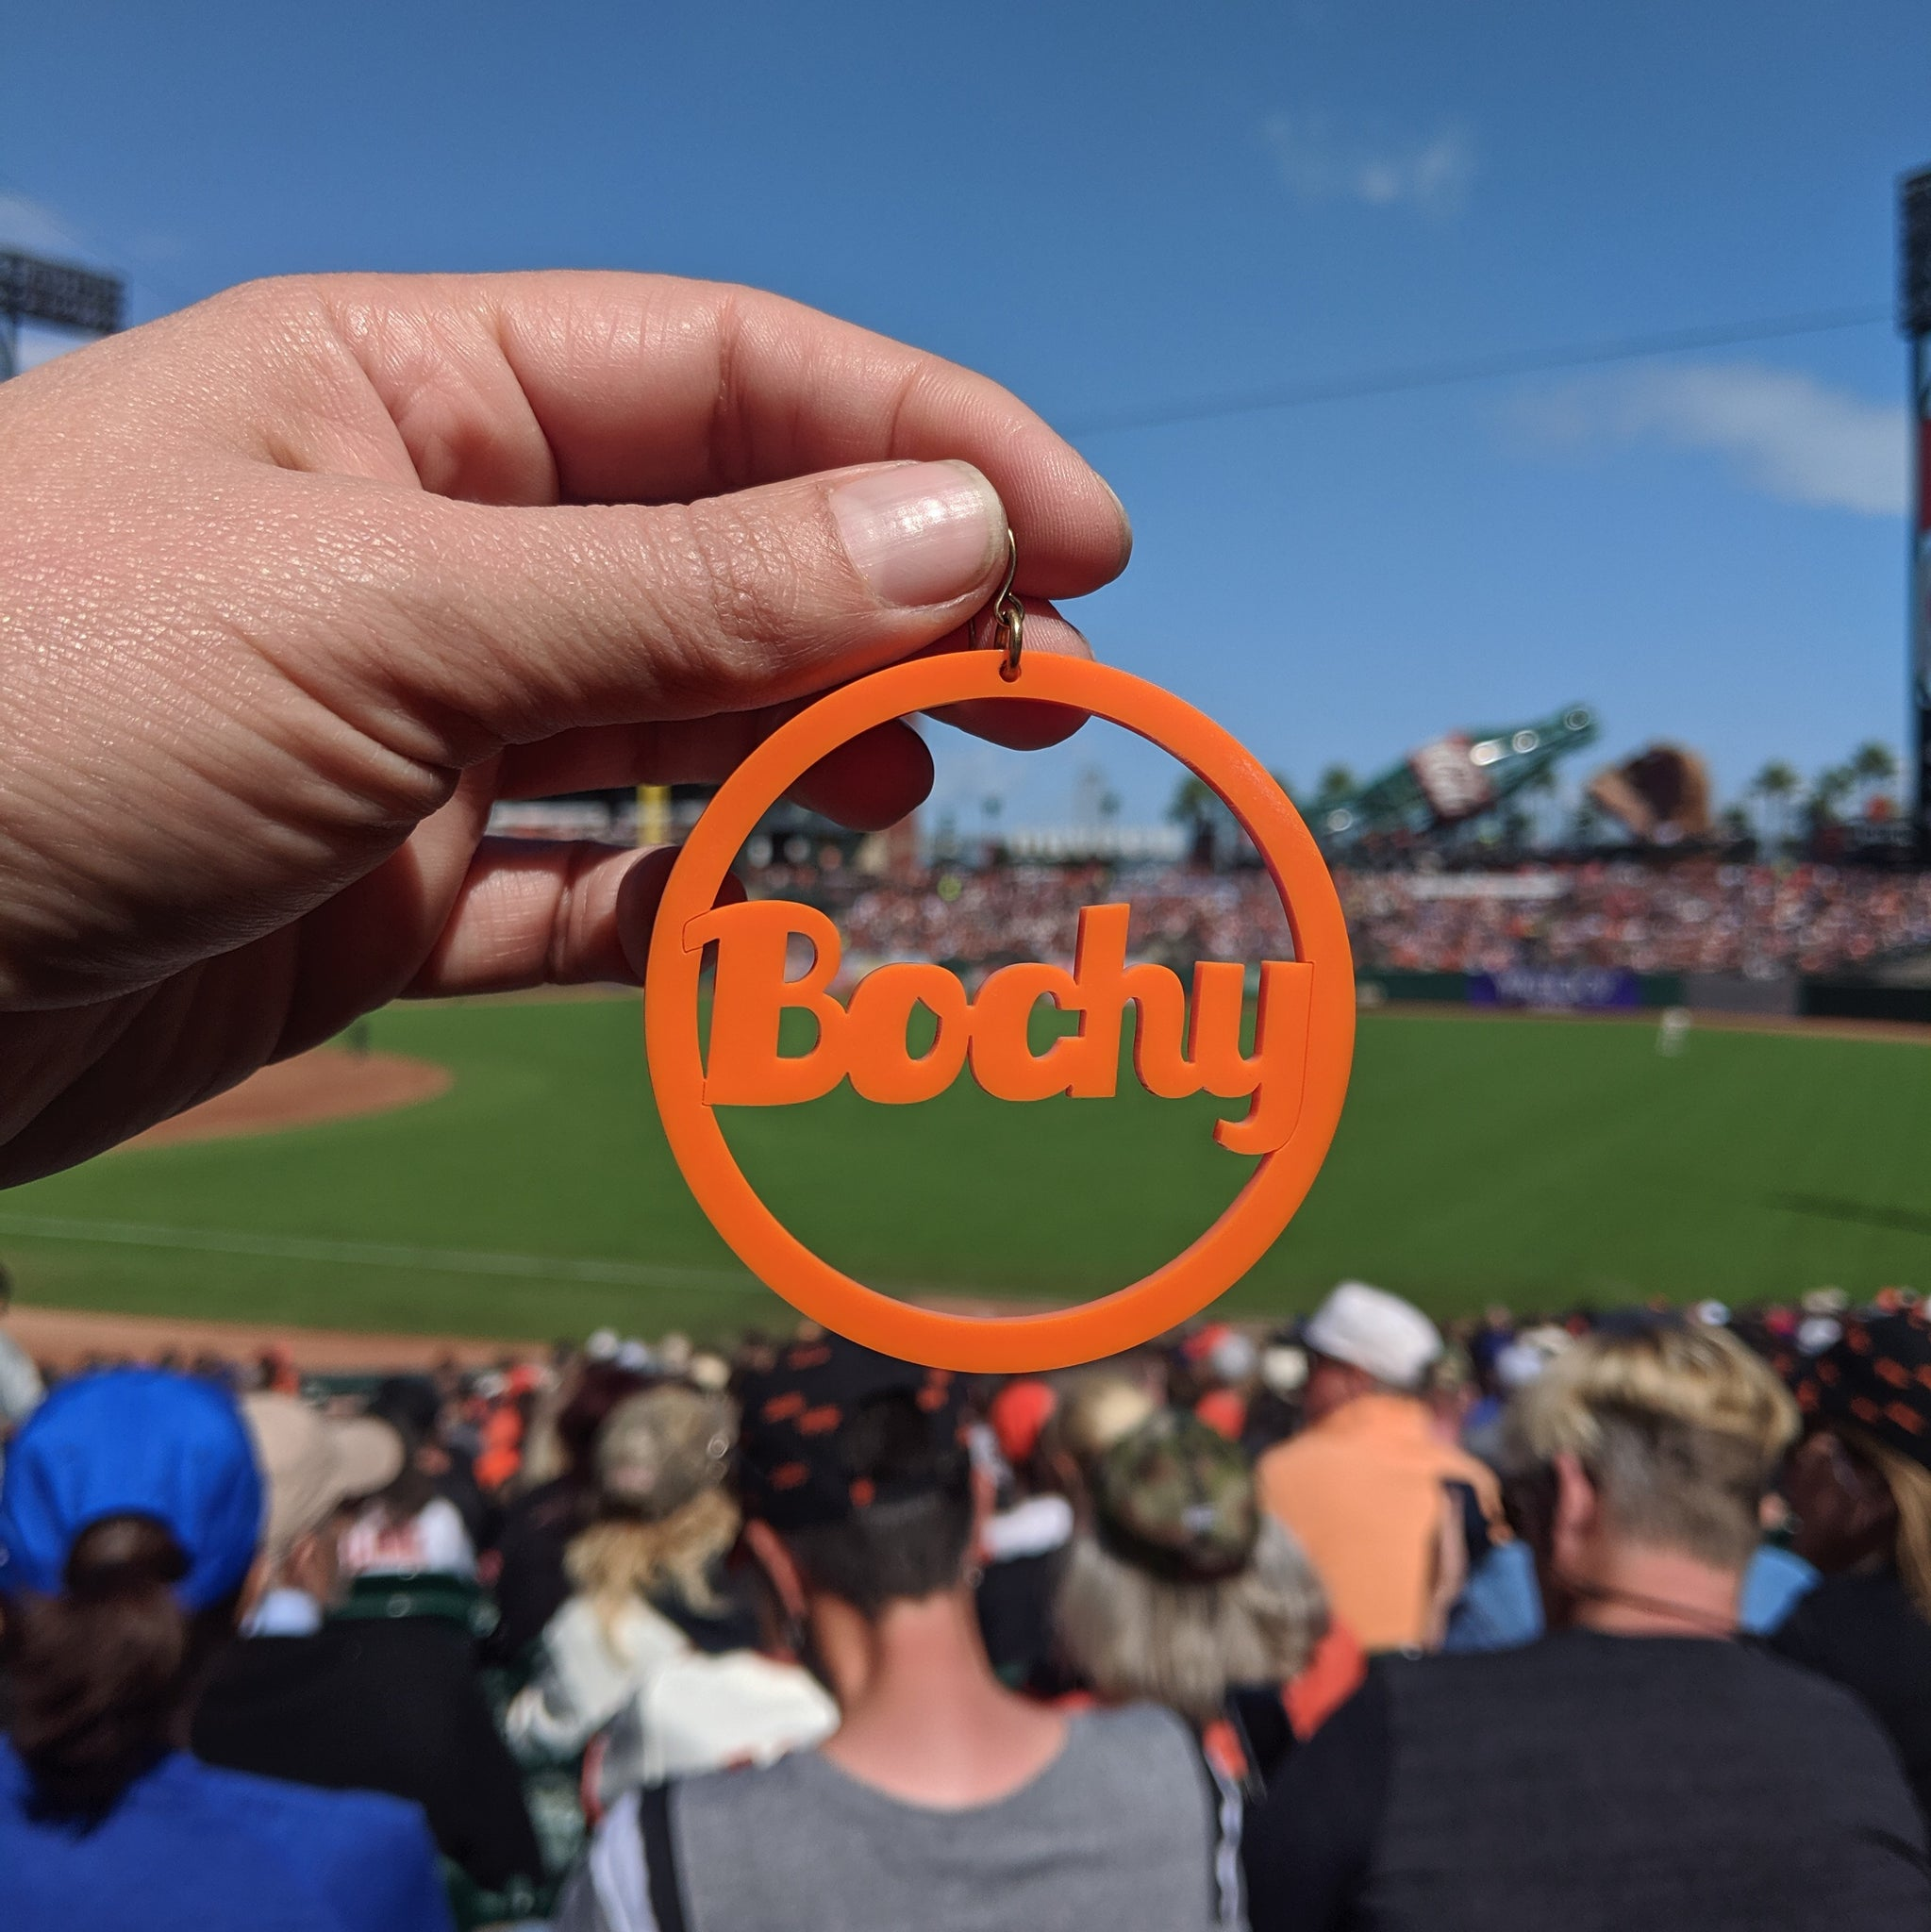 Bochy Earrings